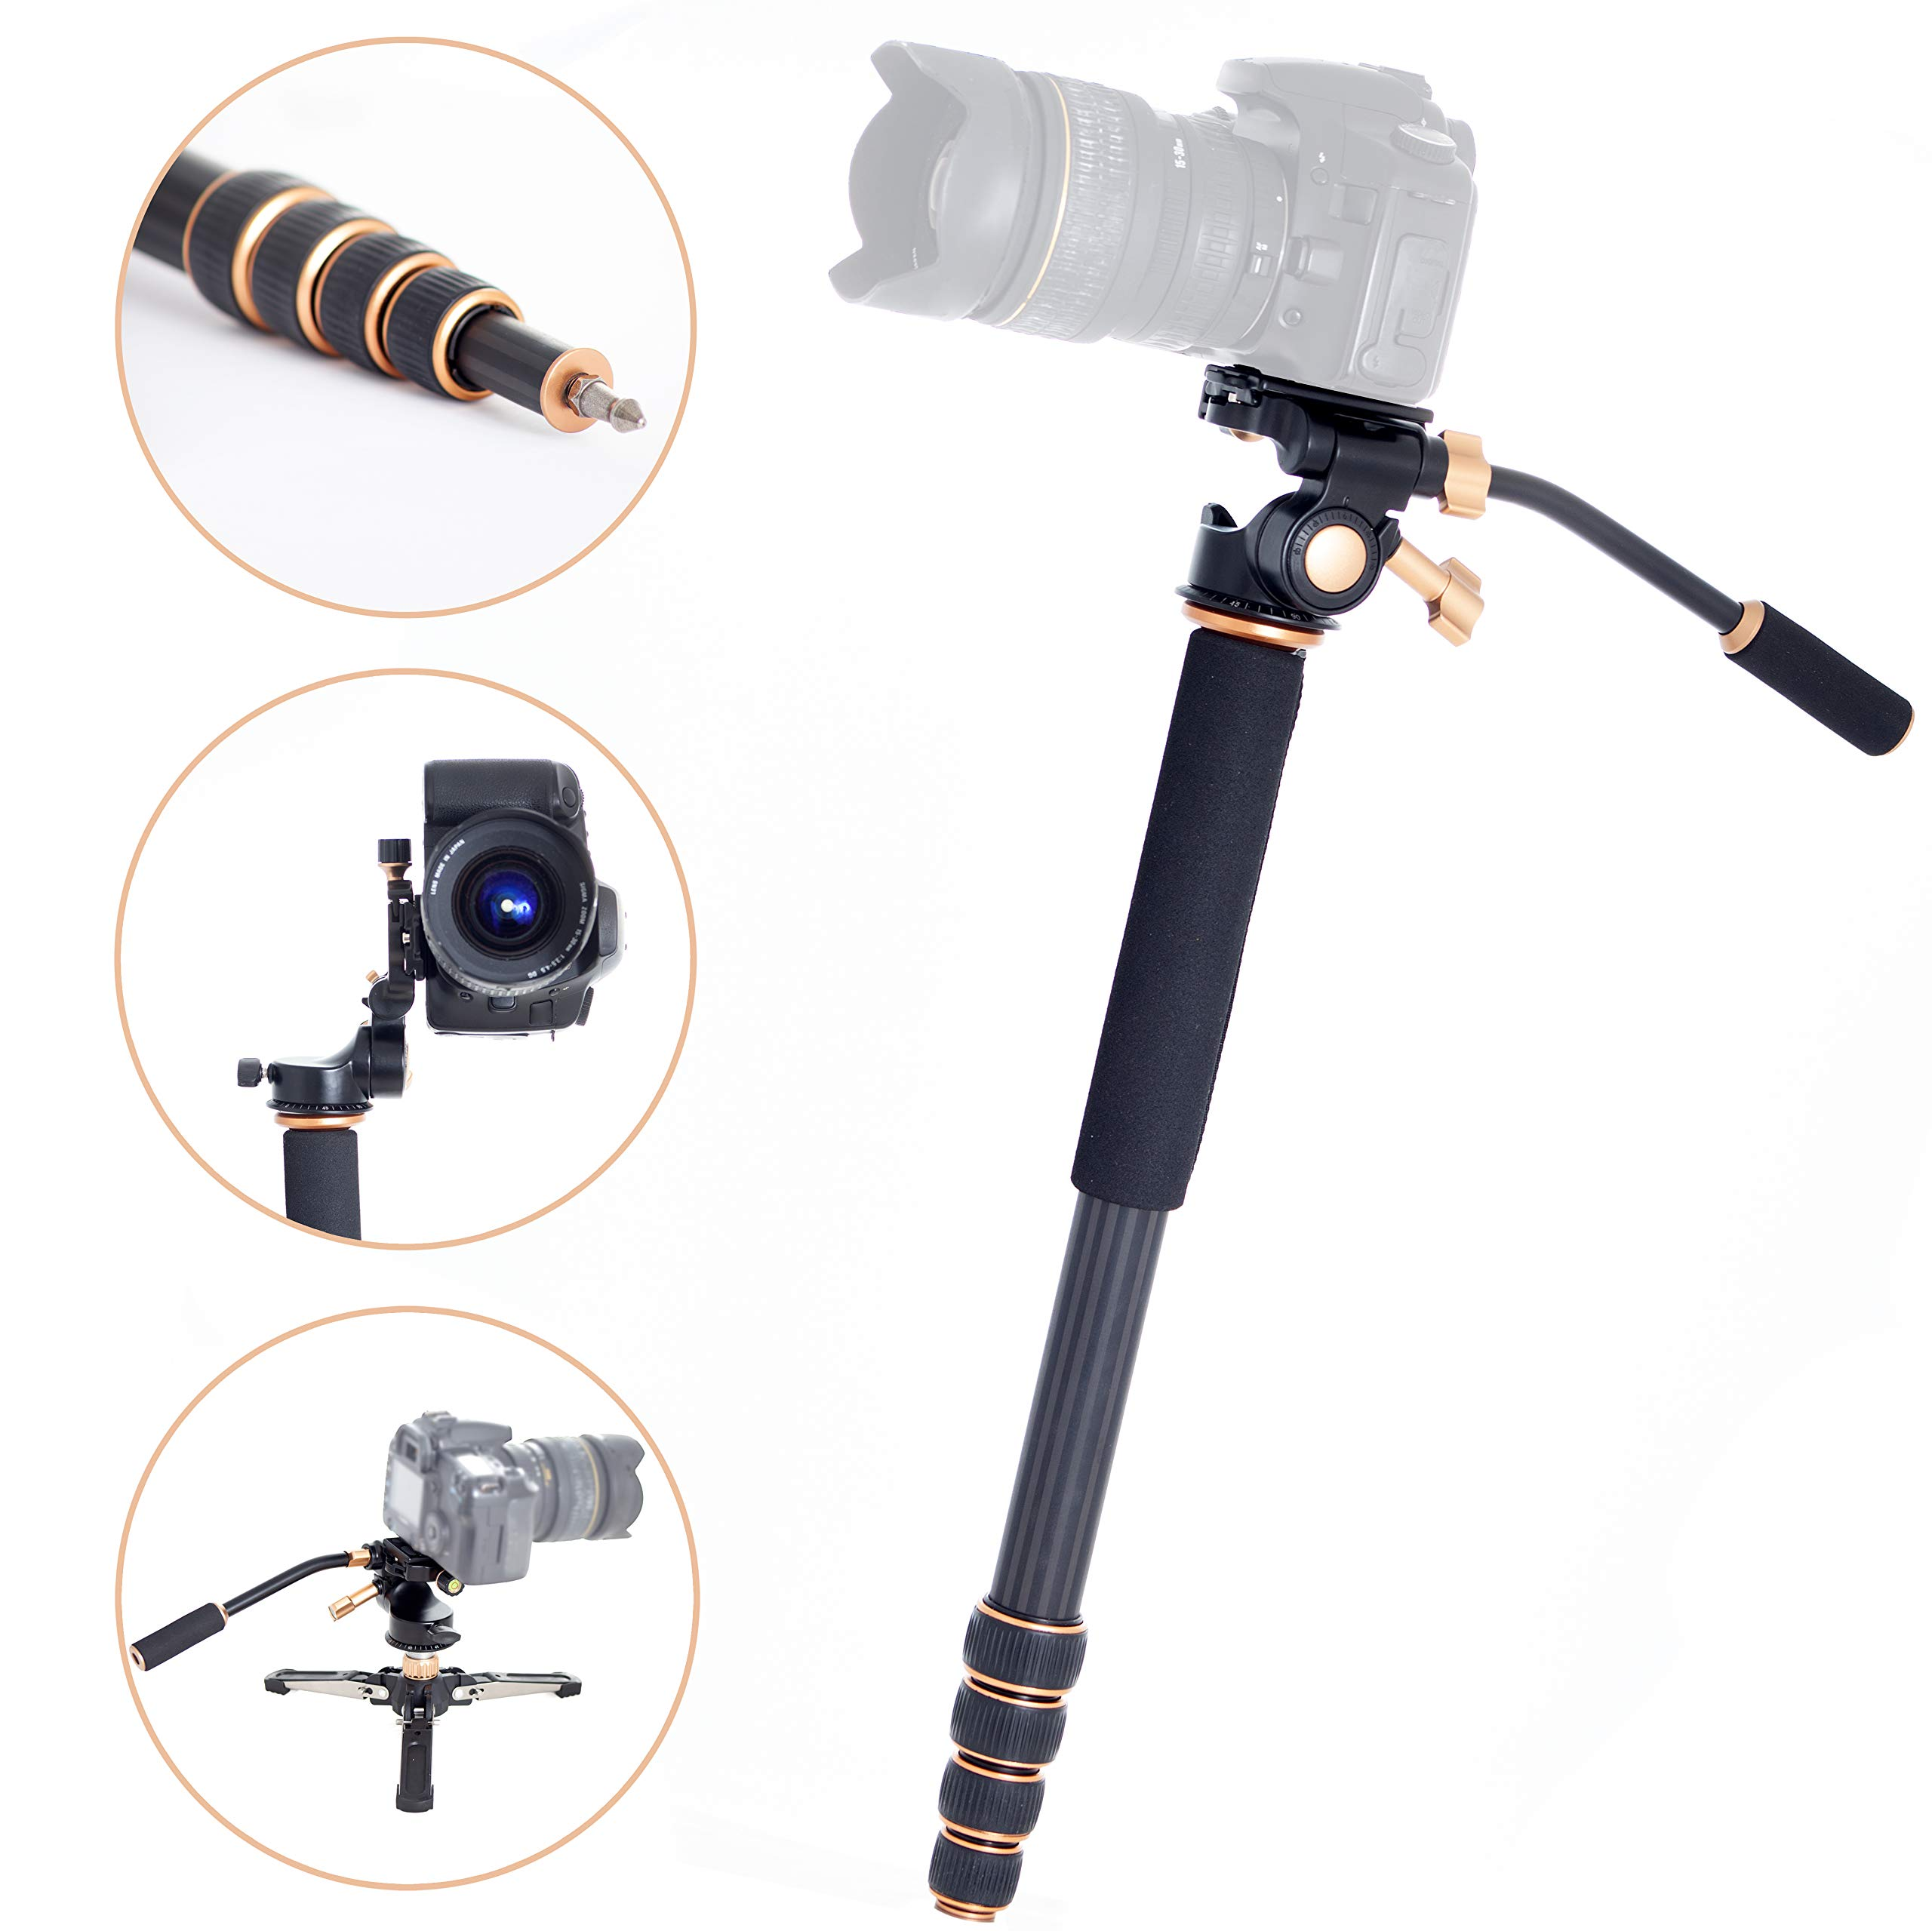 SenseiPhoto Professional Carbon Fiber Monopod Kit with Photo and Video 3-Way Head & Multi Direction Fluid Base for DSRL Cameras and Videocameras Pole Stick by Sensei Photo